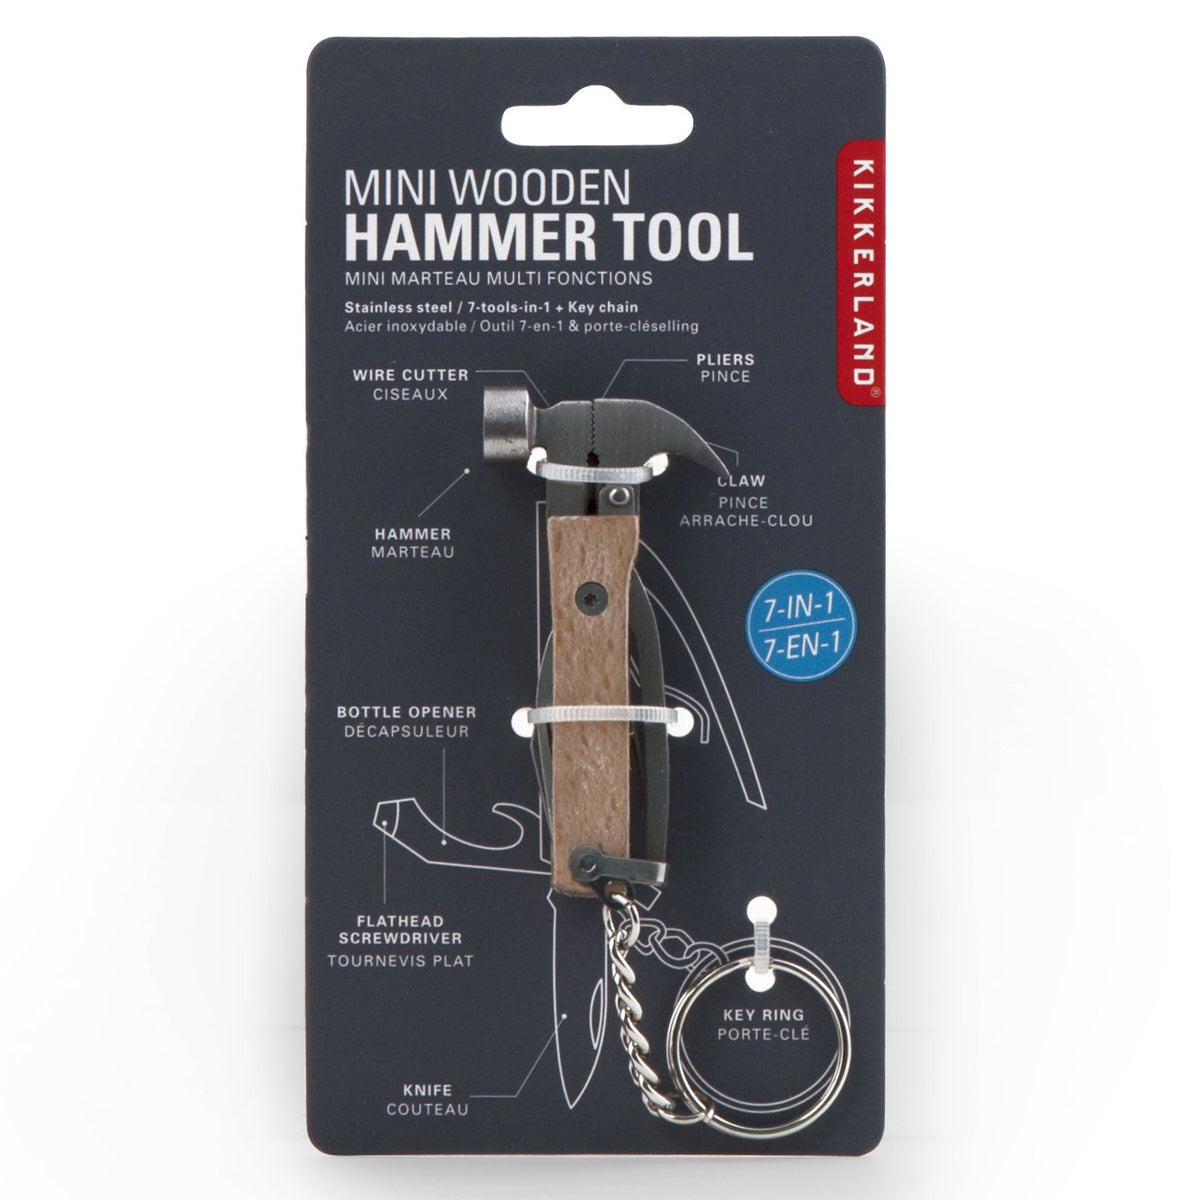 Mini Wooden Hammer Tool with Keyring